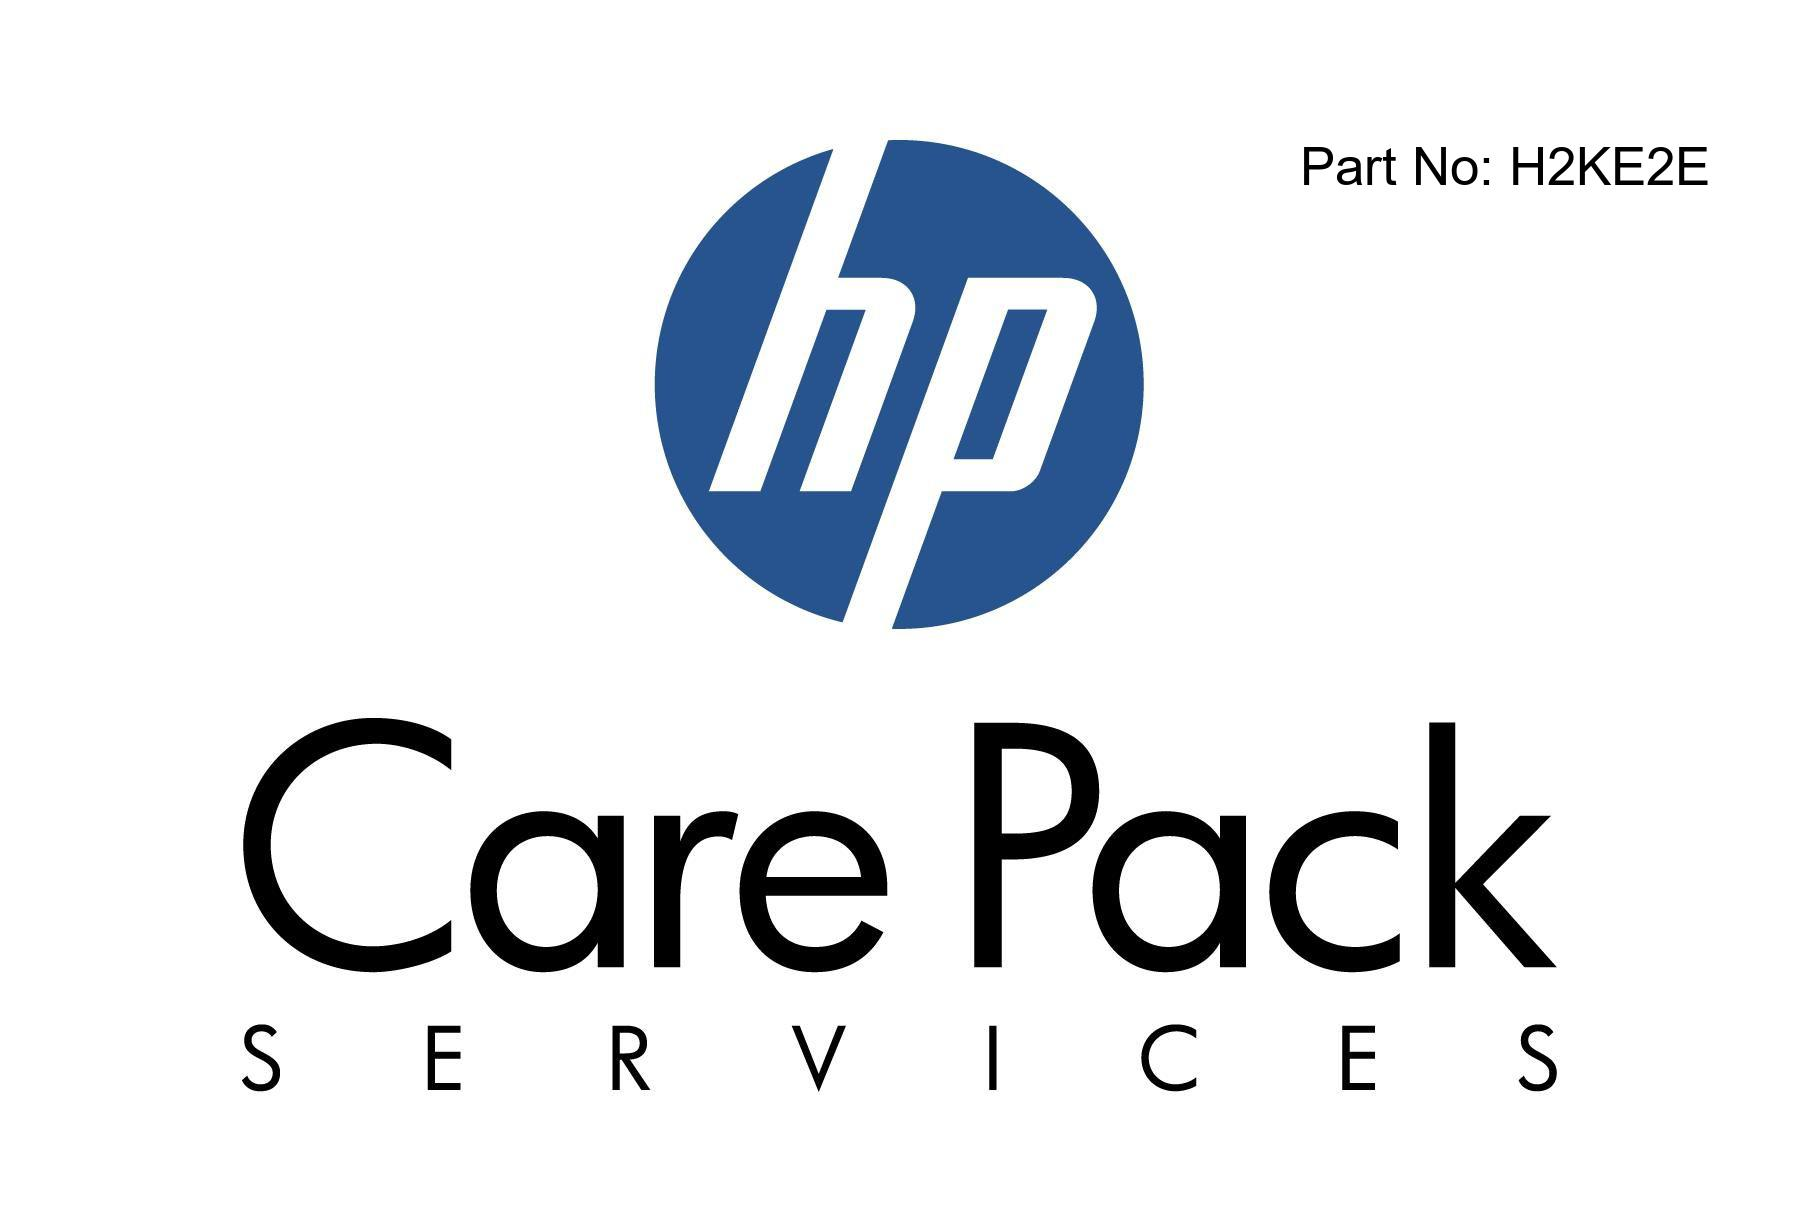 Proactive Care 24x7 Service with Comprehensive Defective Material Retention - Extended service agreement - parts and labor - 3 years - on-site - 24x7 - response time: 4 h